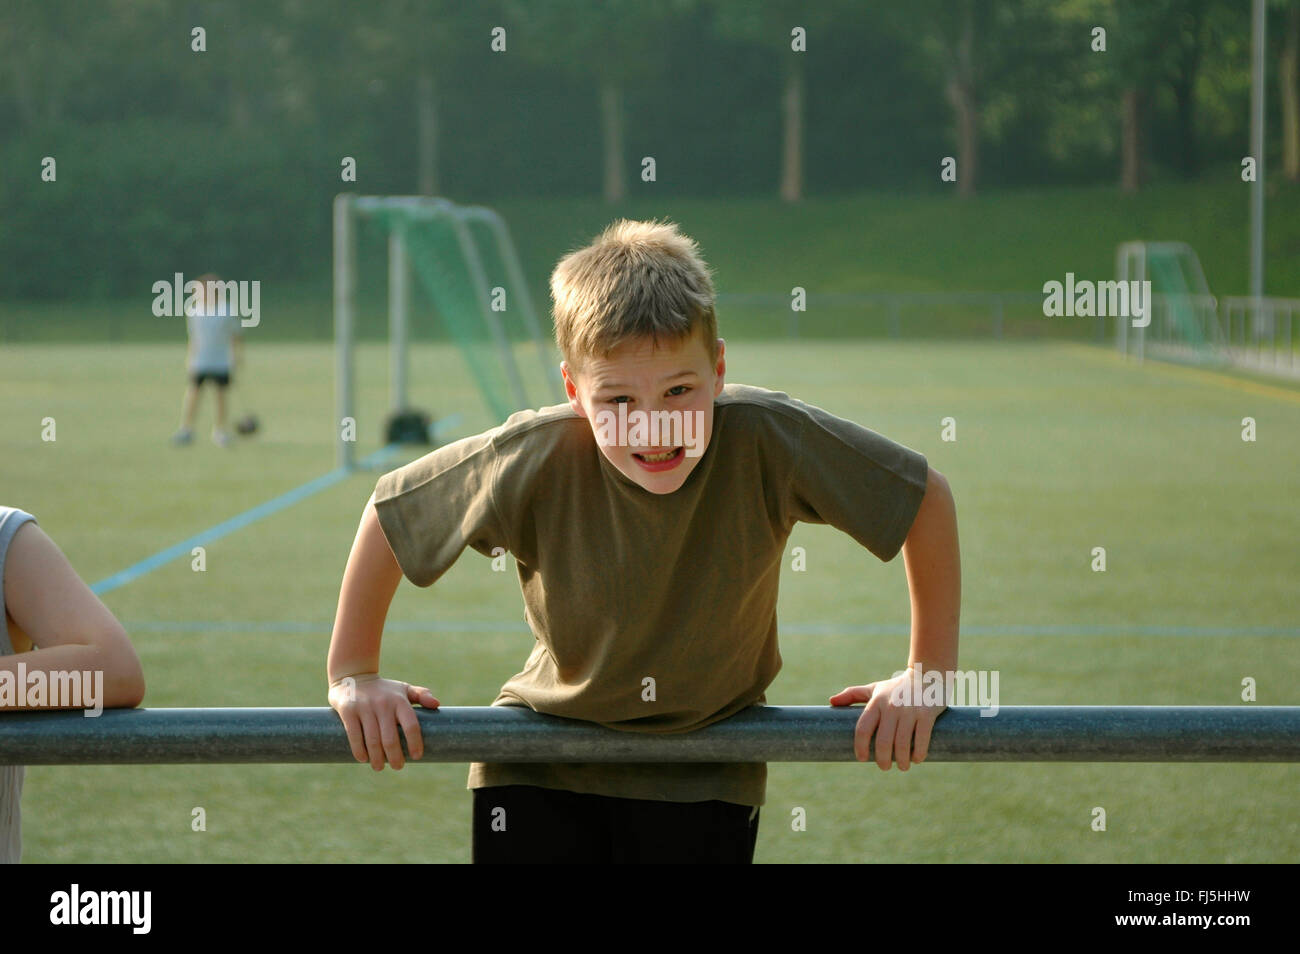 boy pressing himself above a railing on a football pitch, portrait of a child - Stock Image